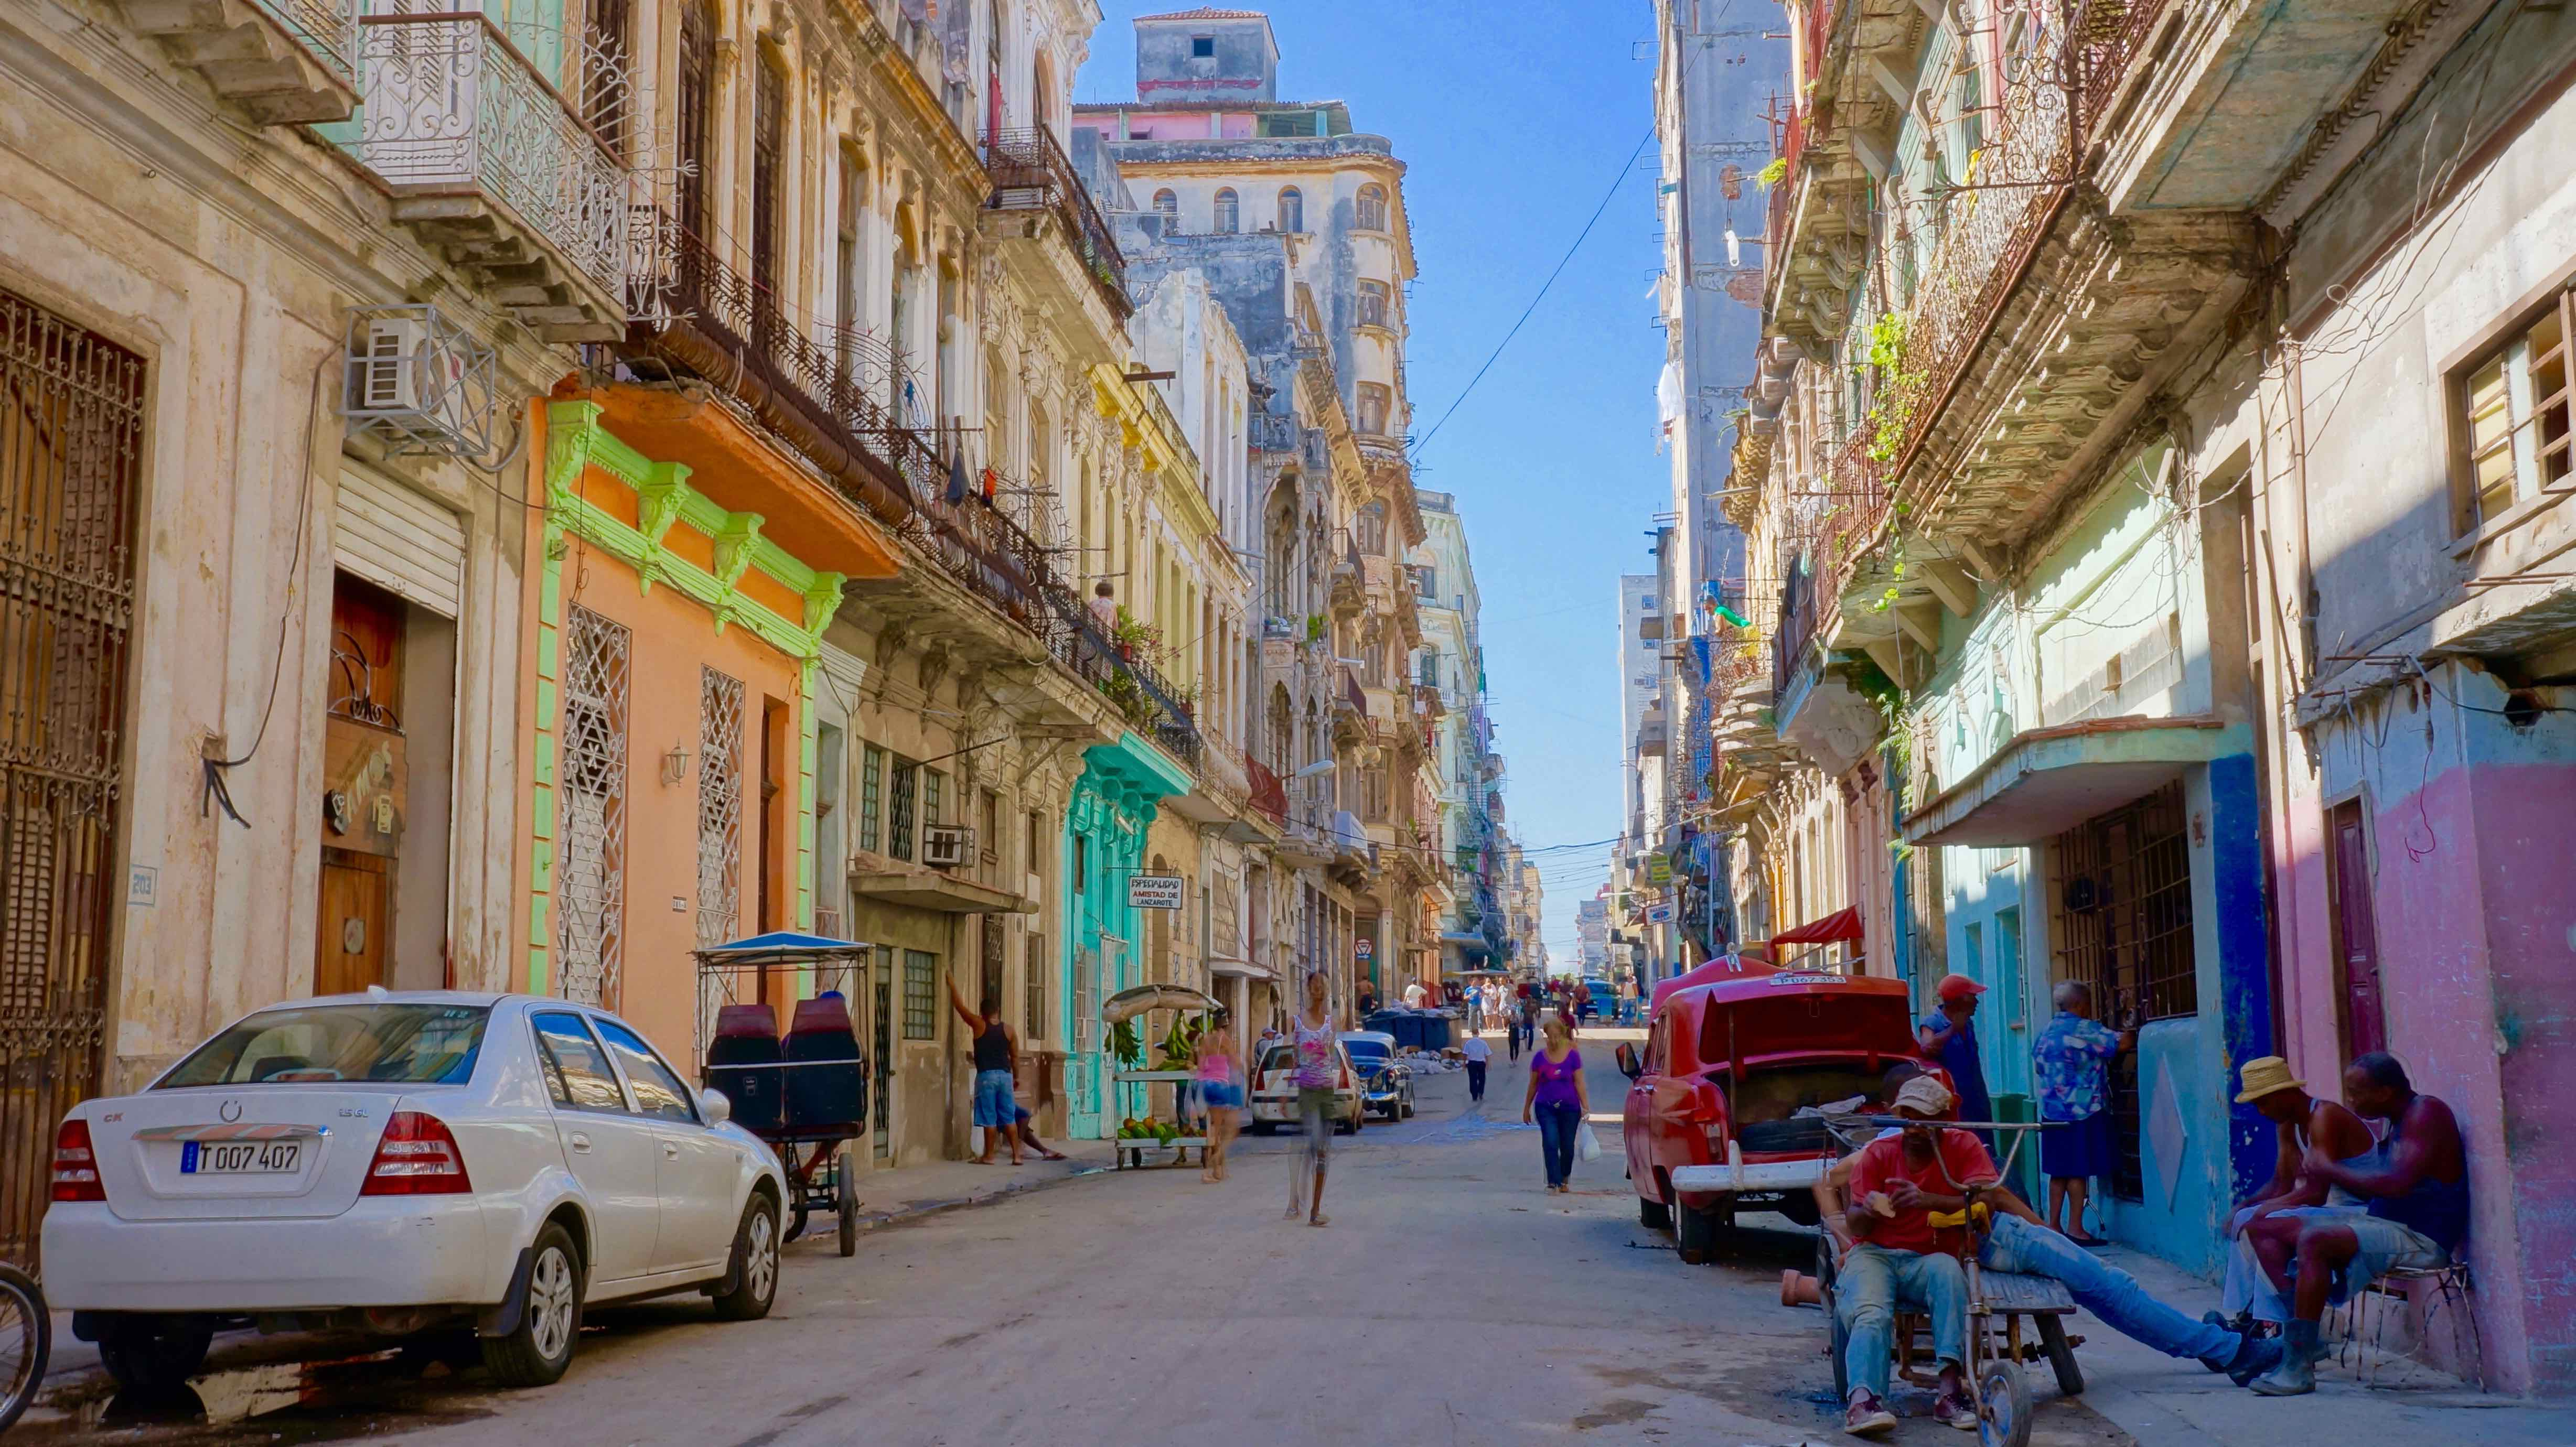 backpacking in cuba